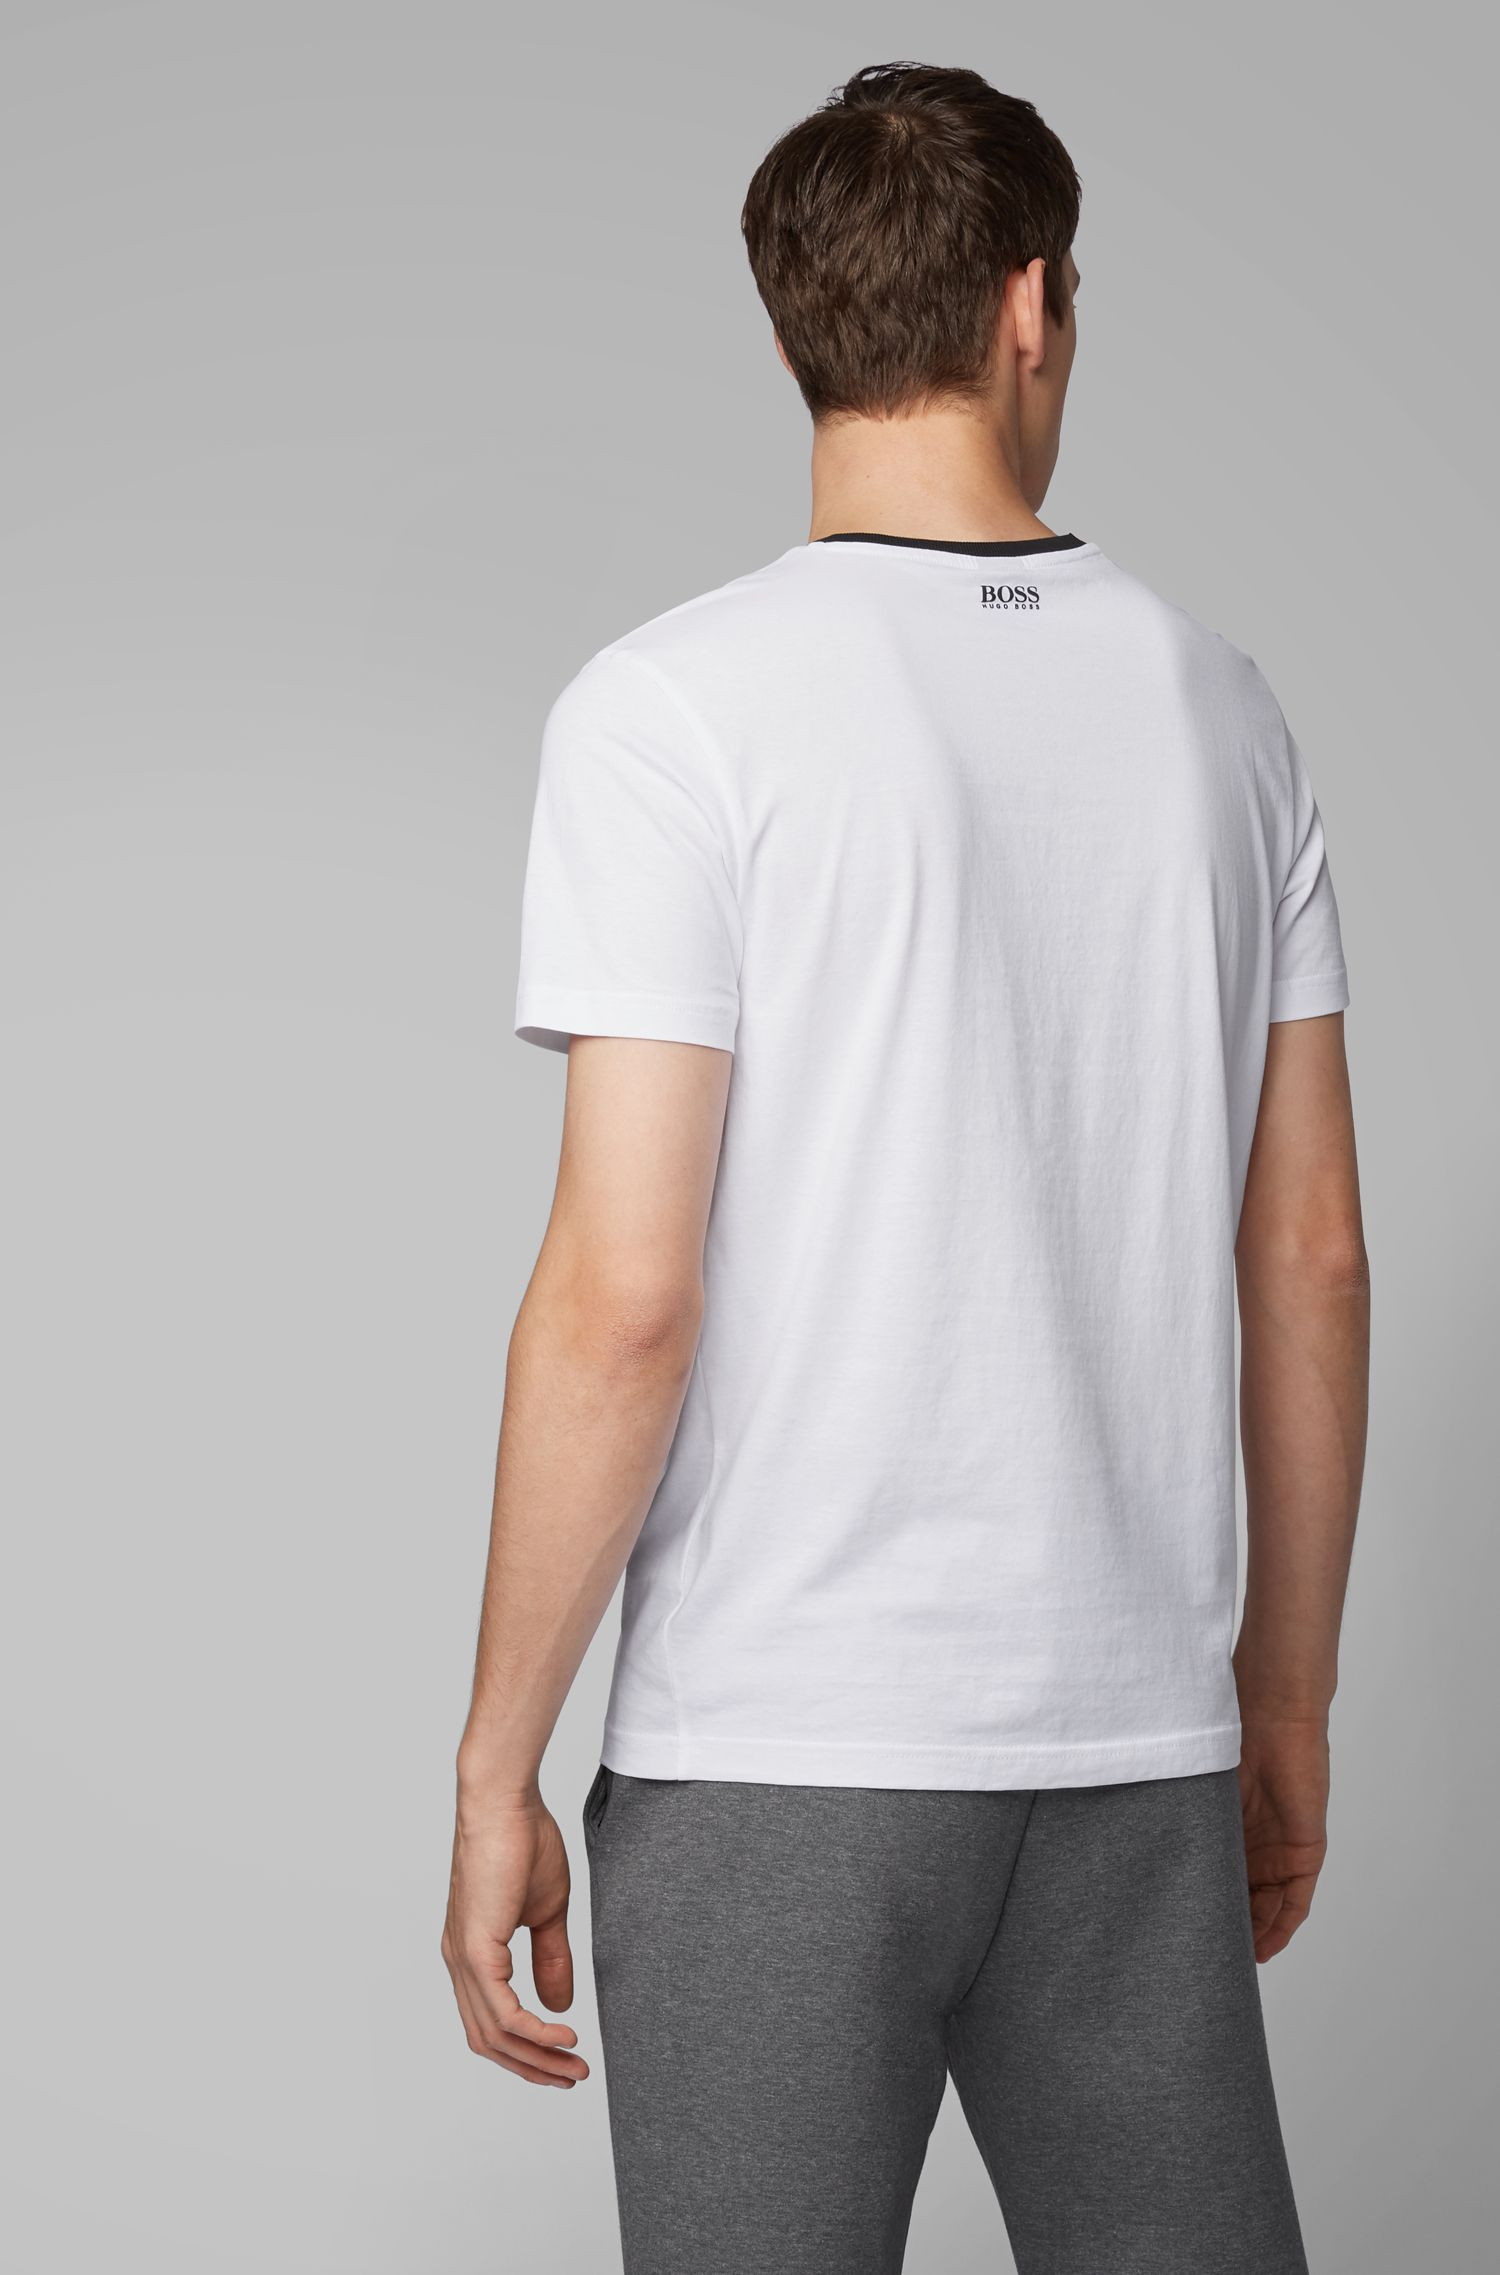 Crew-neck T-shirt with embroidered-effect curved logo, White